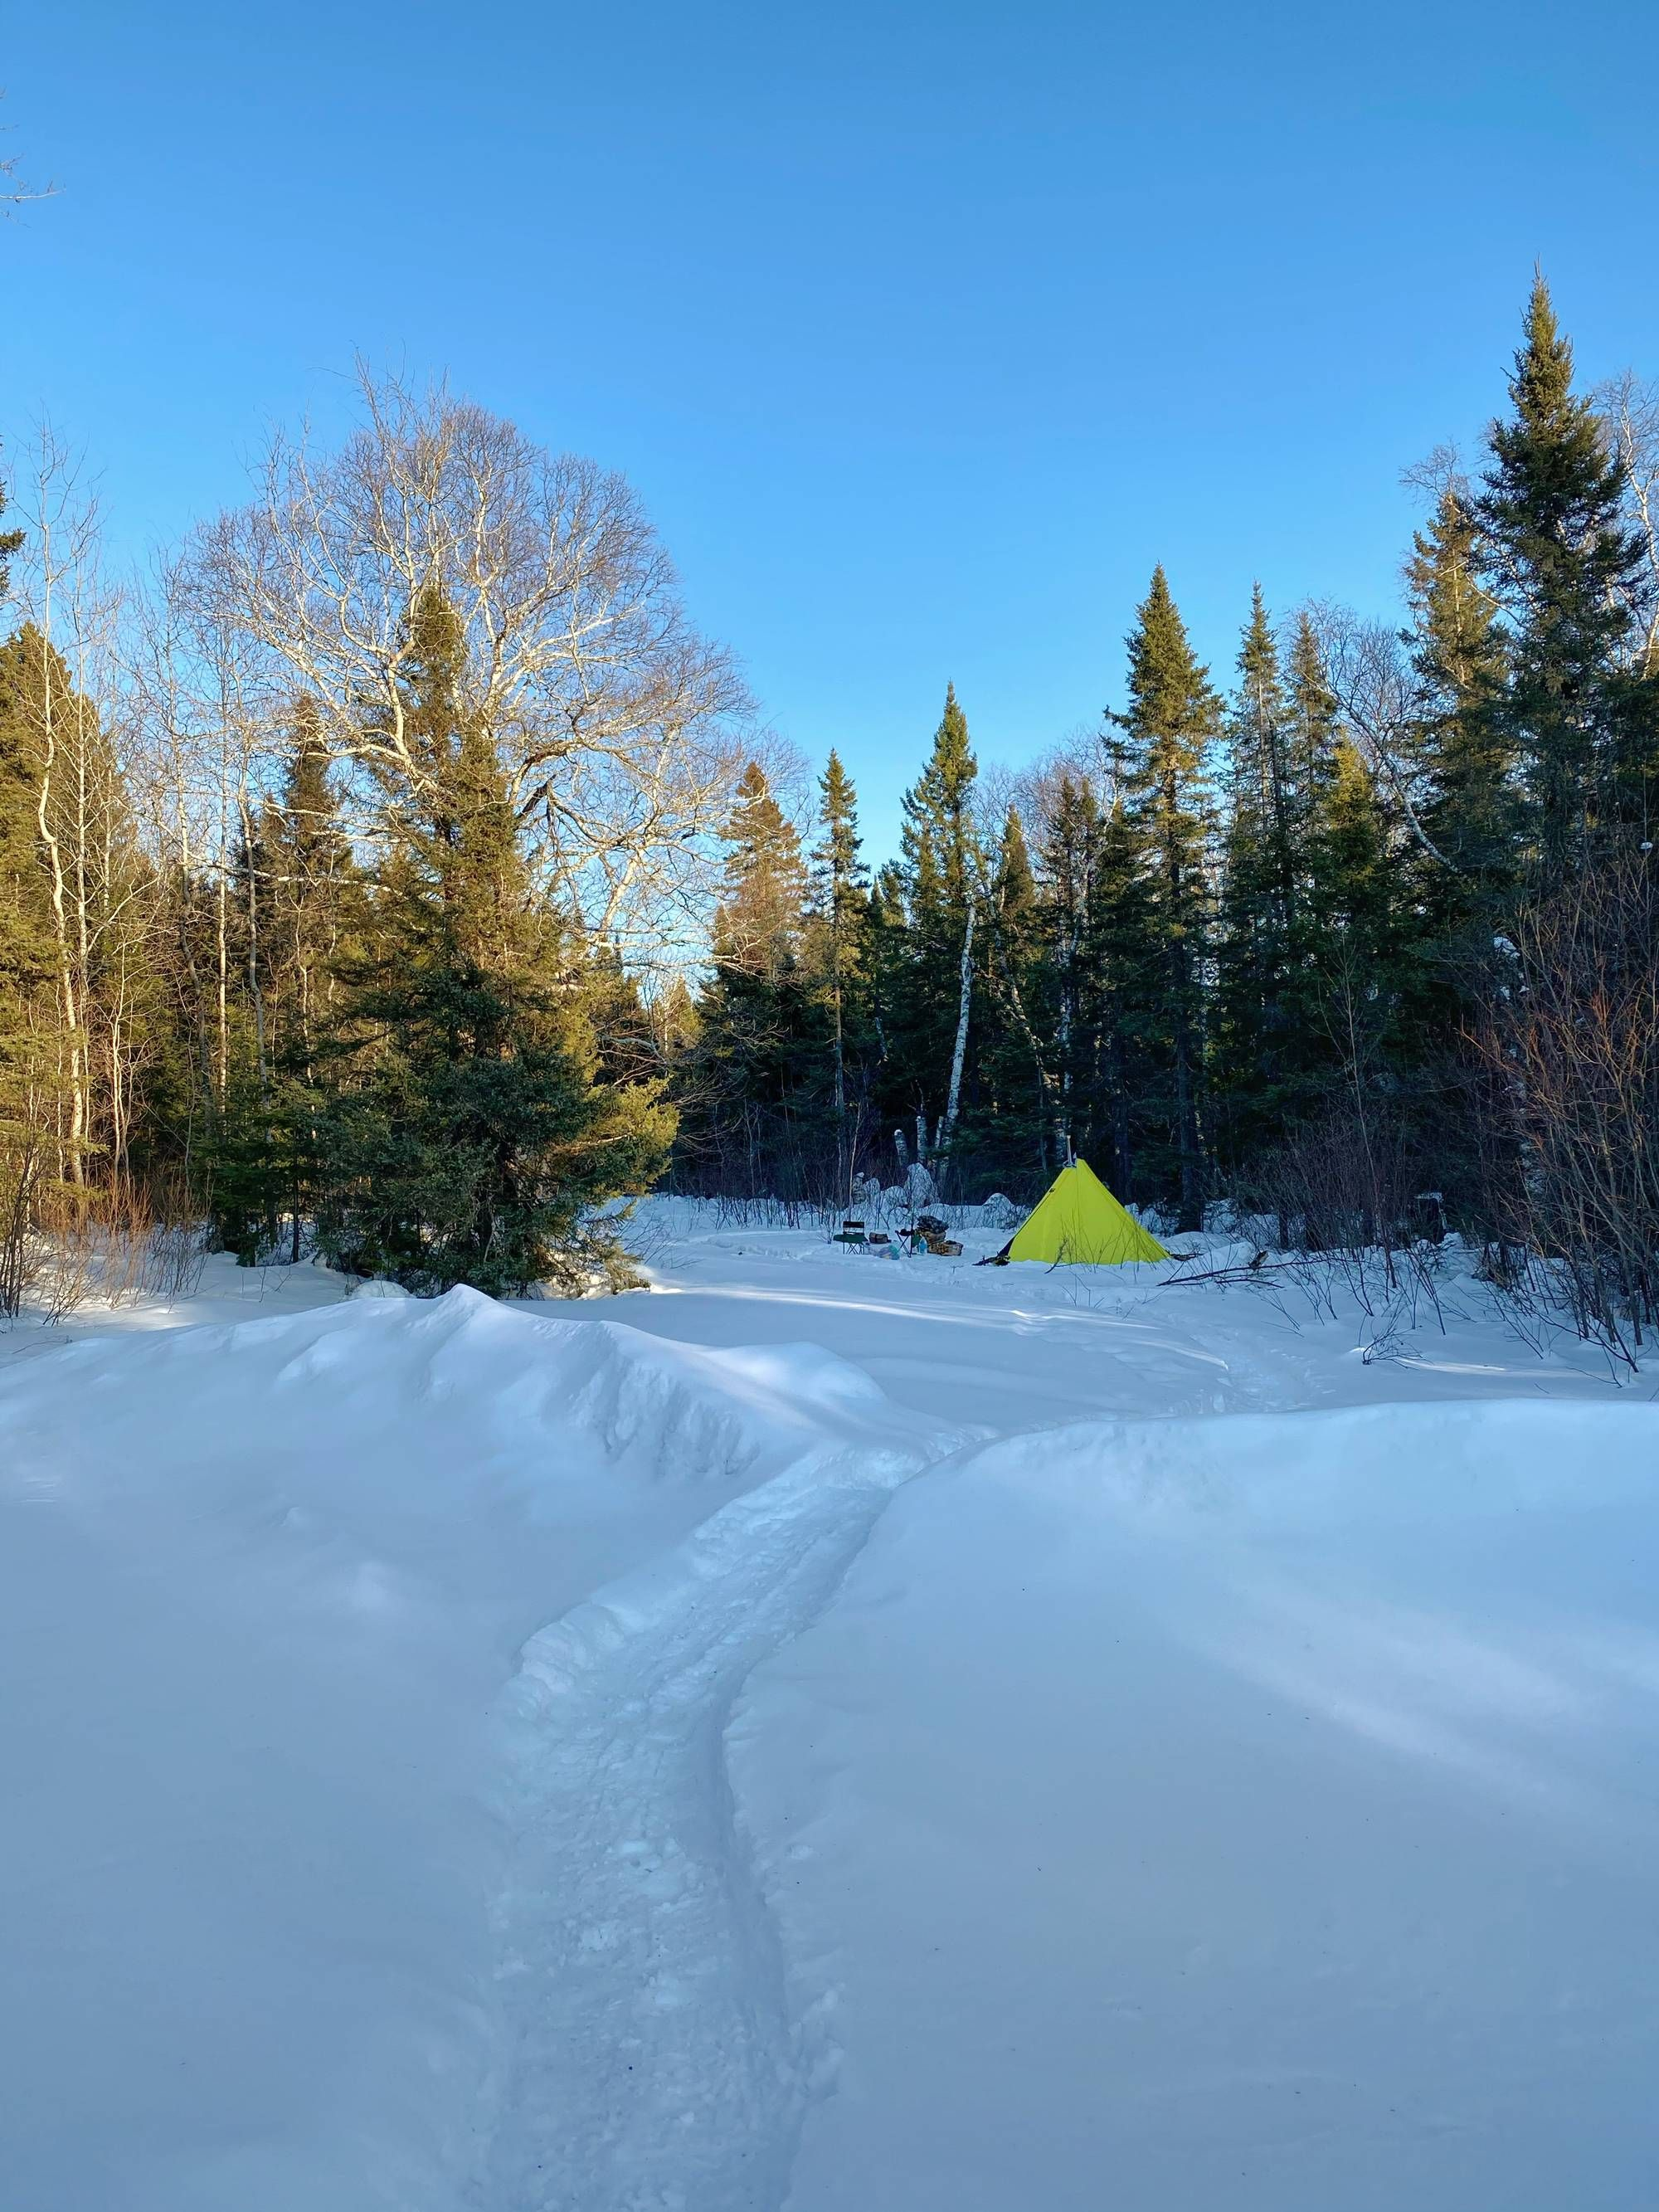 Had a winter adventure in northern Minnesota. Got the Jeep ...